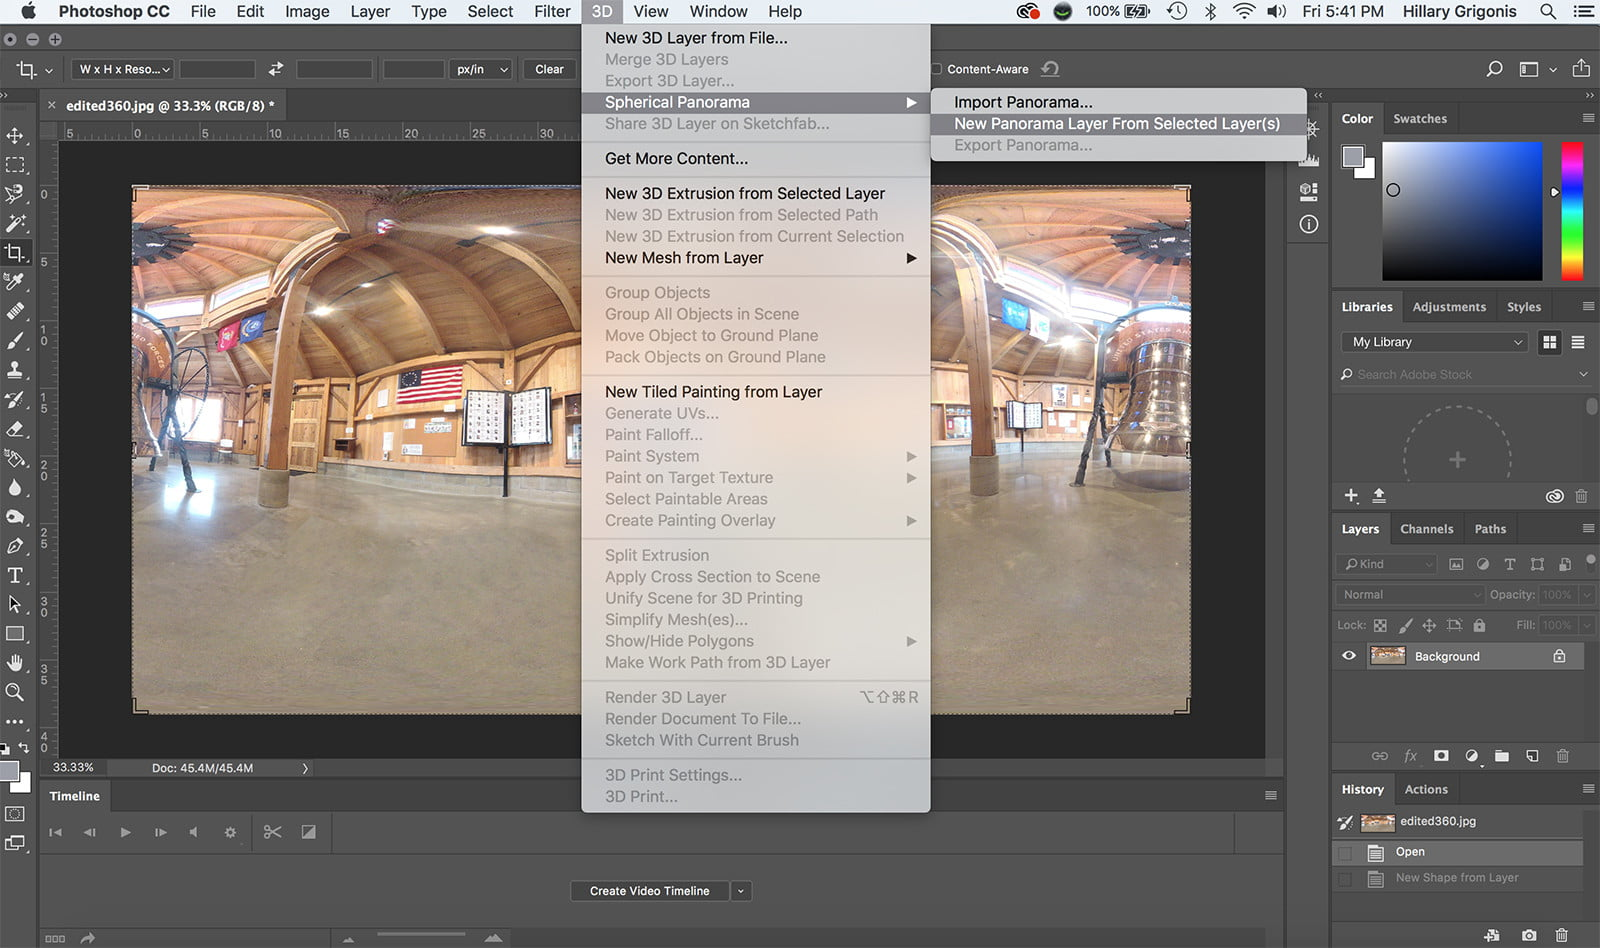 How To Edit 360 Photos in Photoshop in 6 Easy Steps | Digital Trends